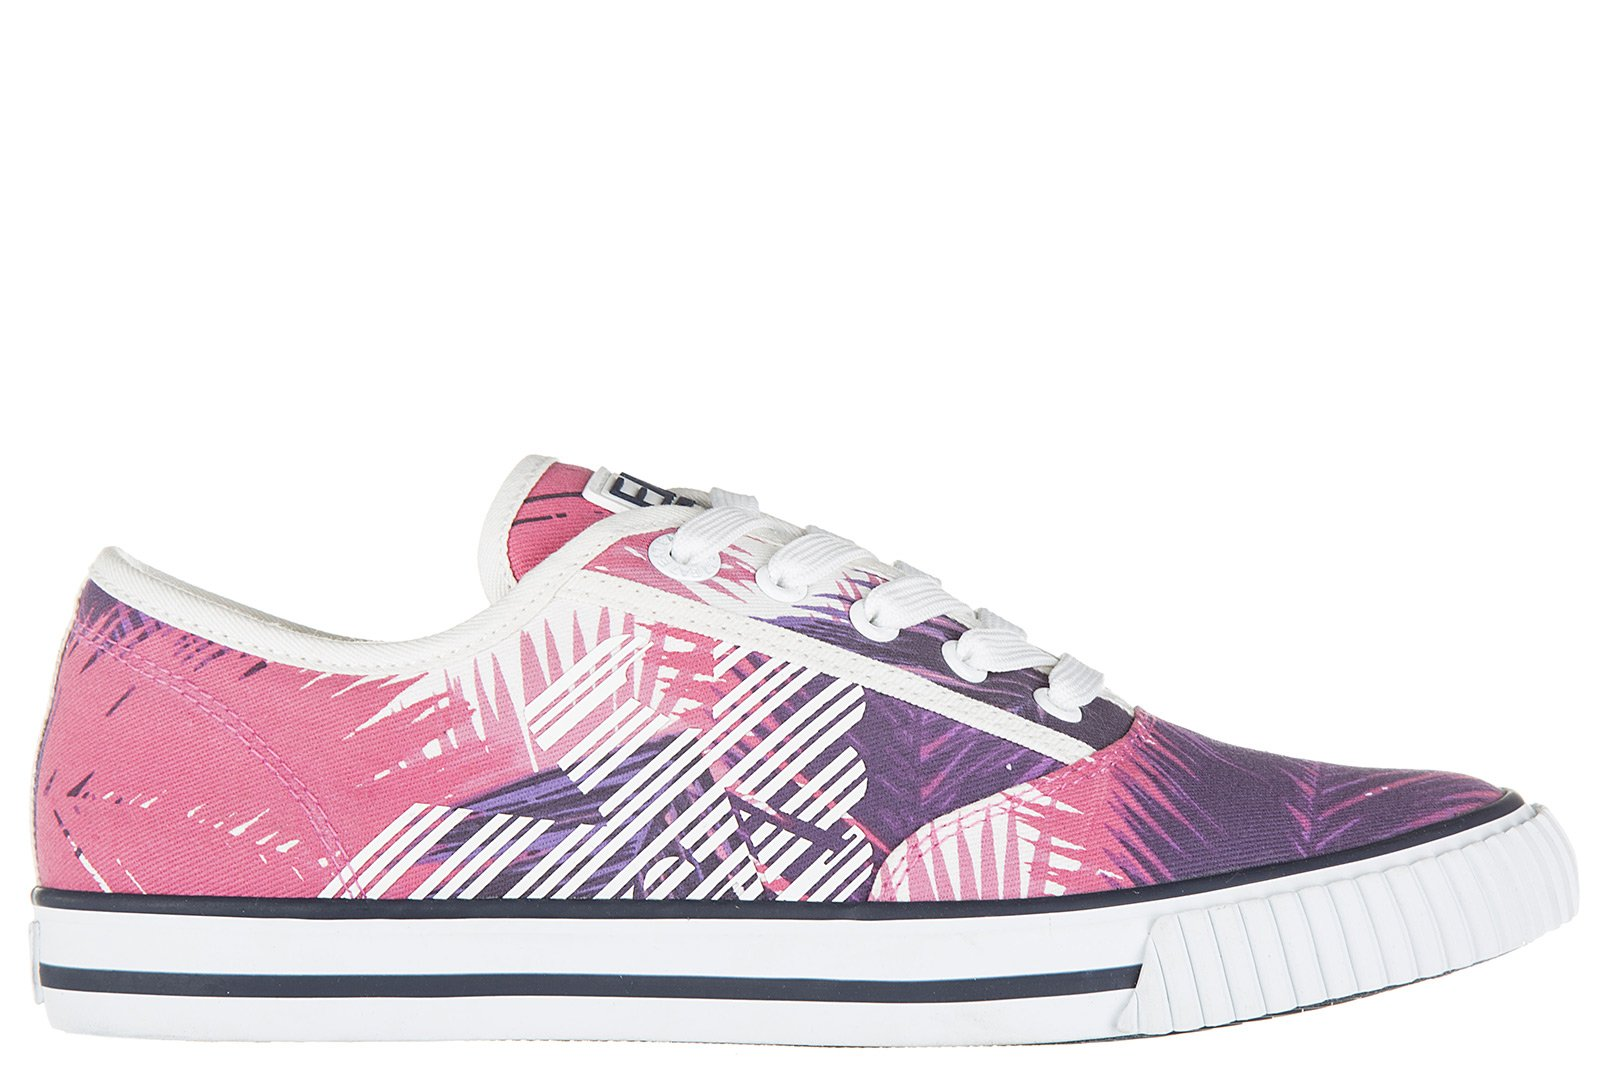 Emporio Armani EA7 Women's Shoes Trainers Sneakers Cult Vintage Summer Pink US Size 6 278087 7P299 14773